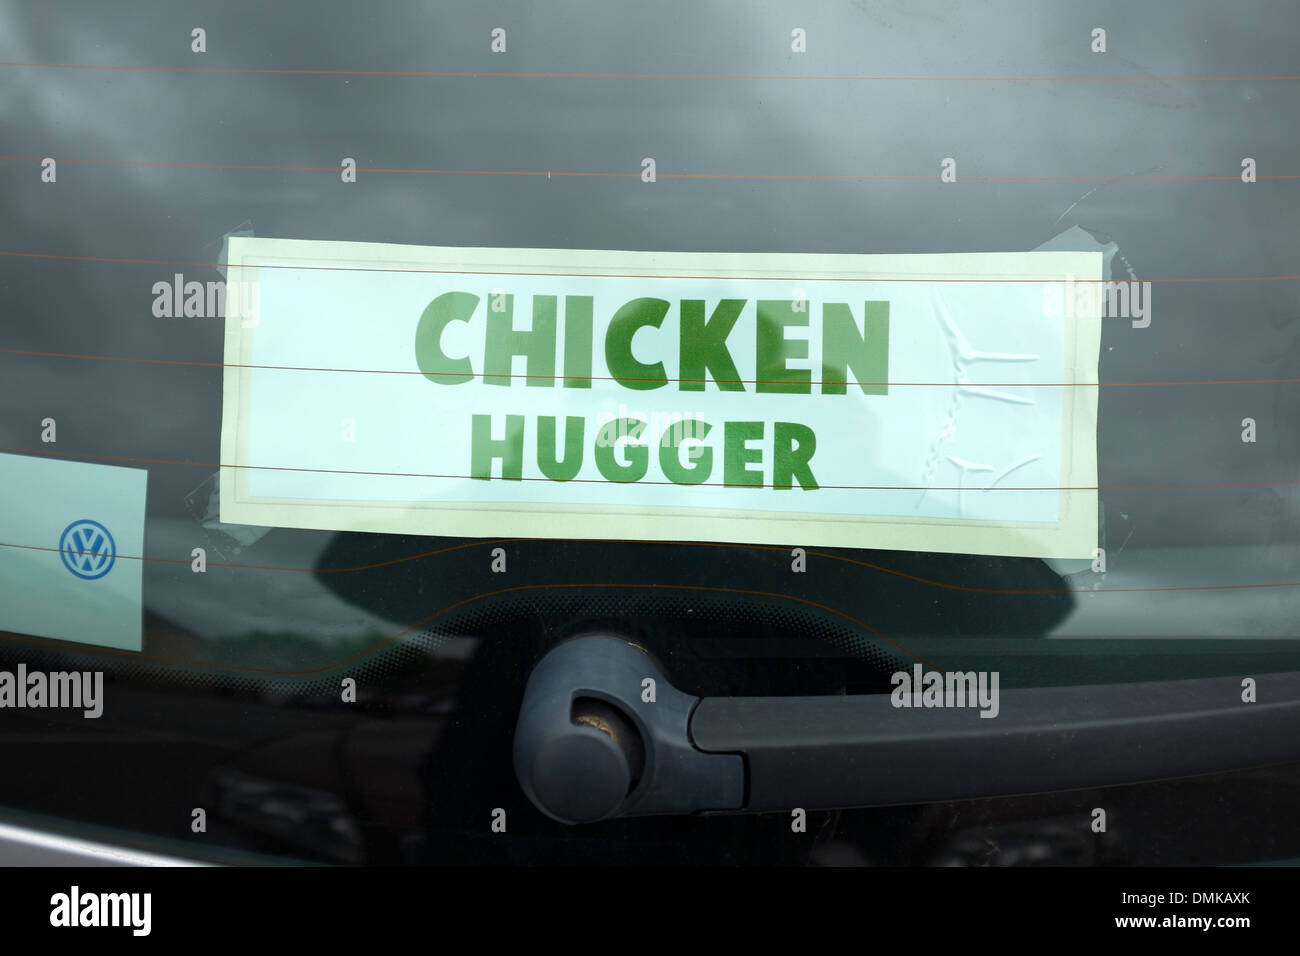 Chicken Hugger funny Sign Love animals anti cruelty - Stock Image